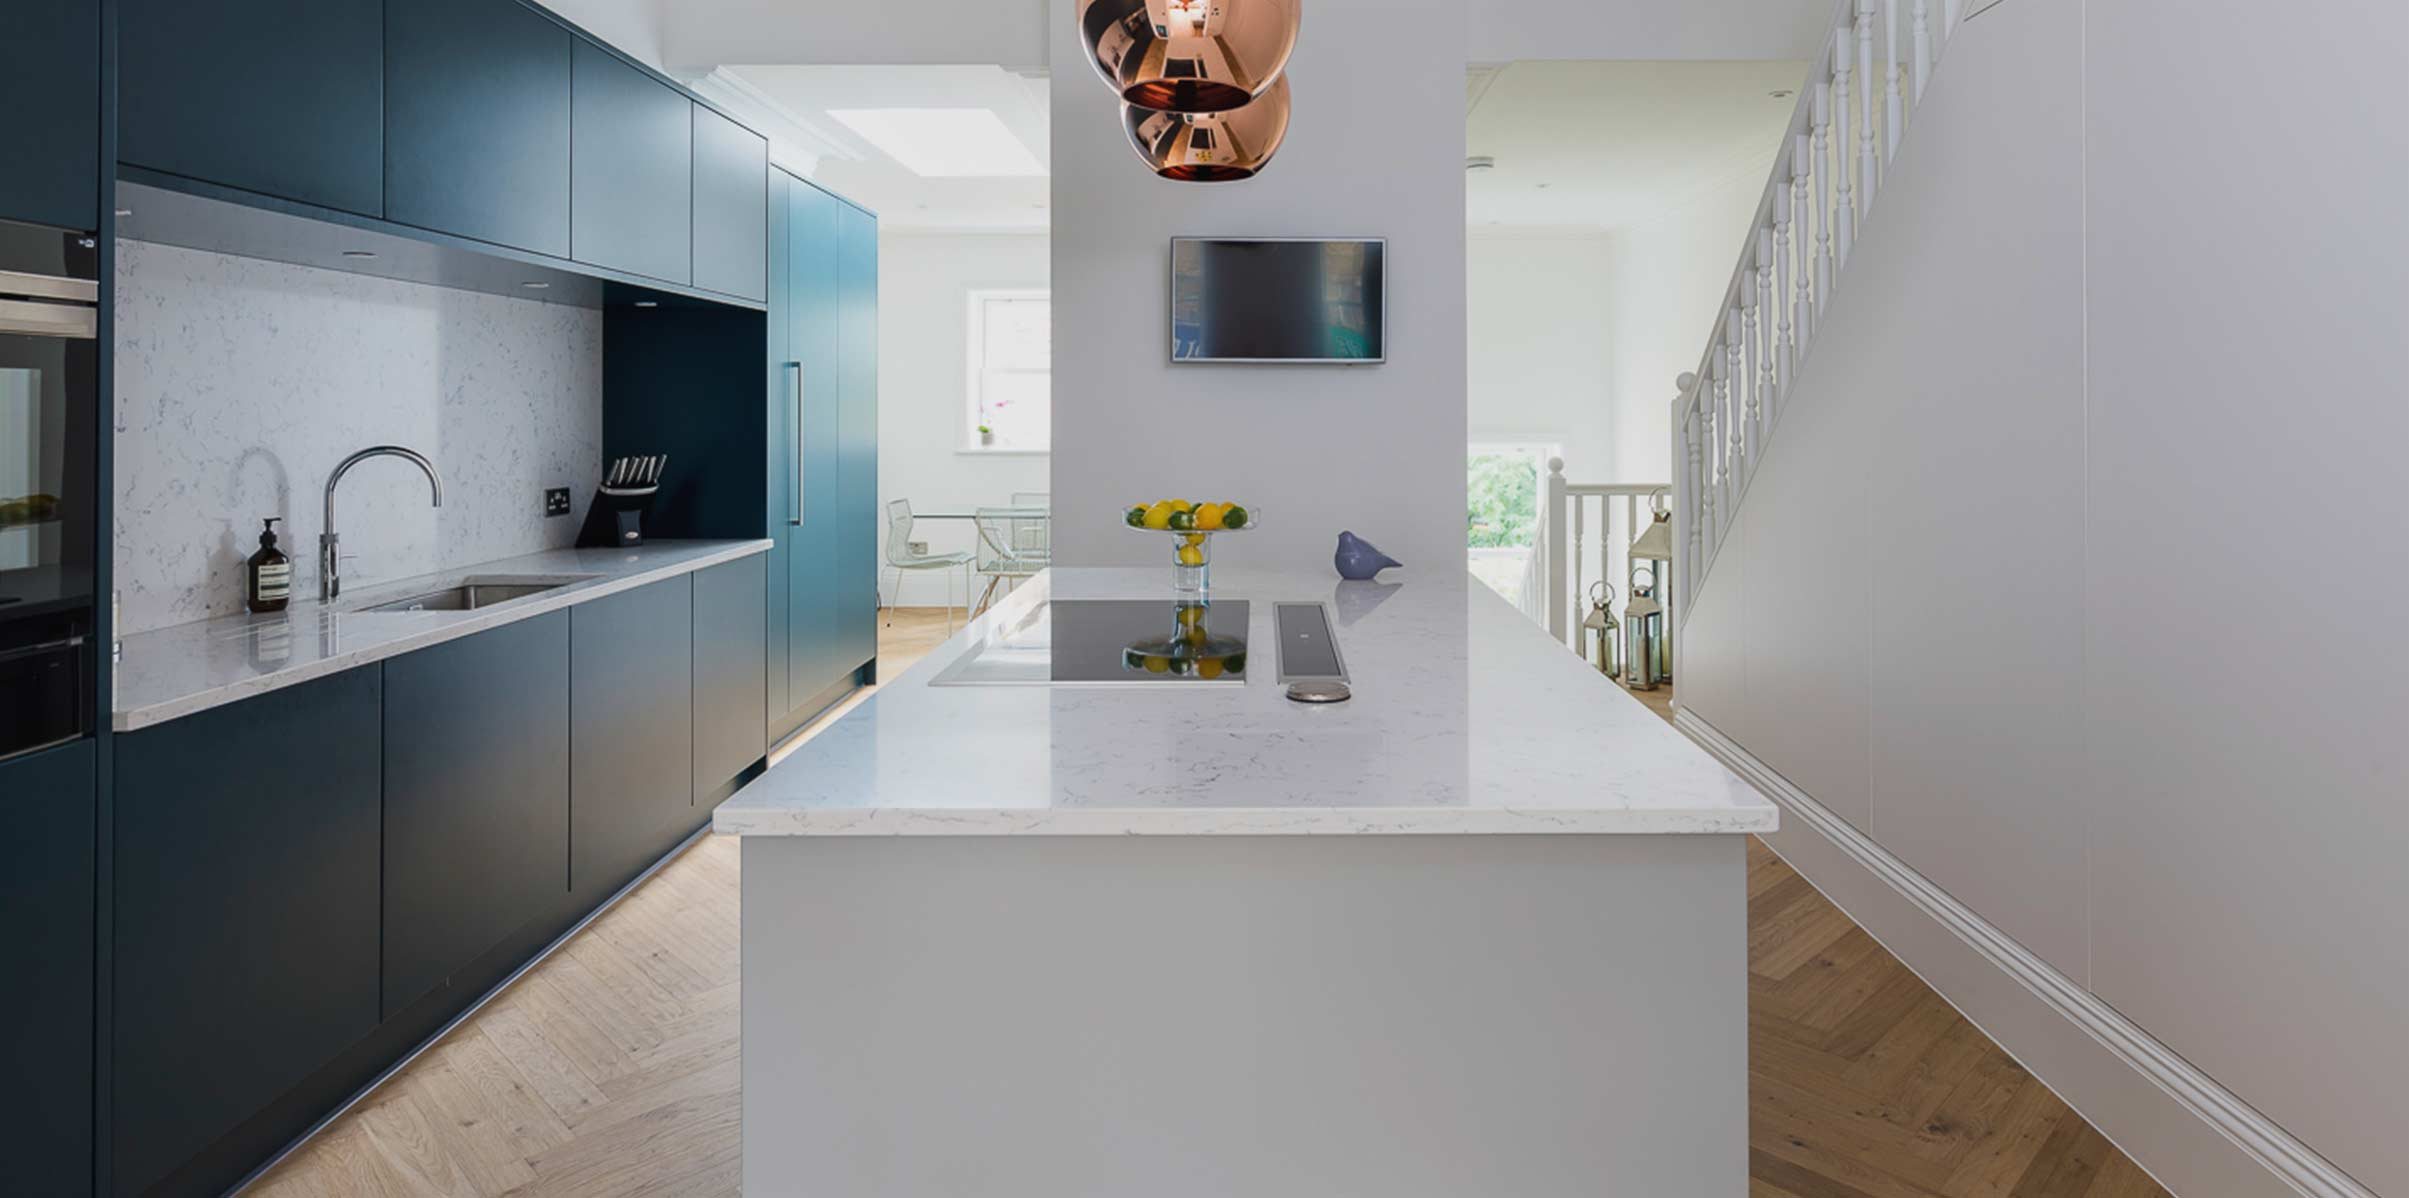 Contemporary Fusion kitchen in blue